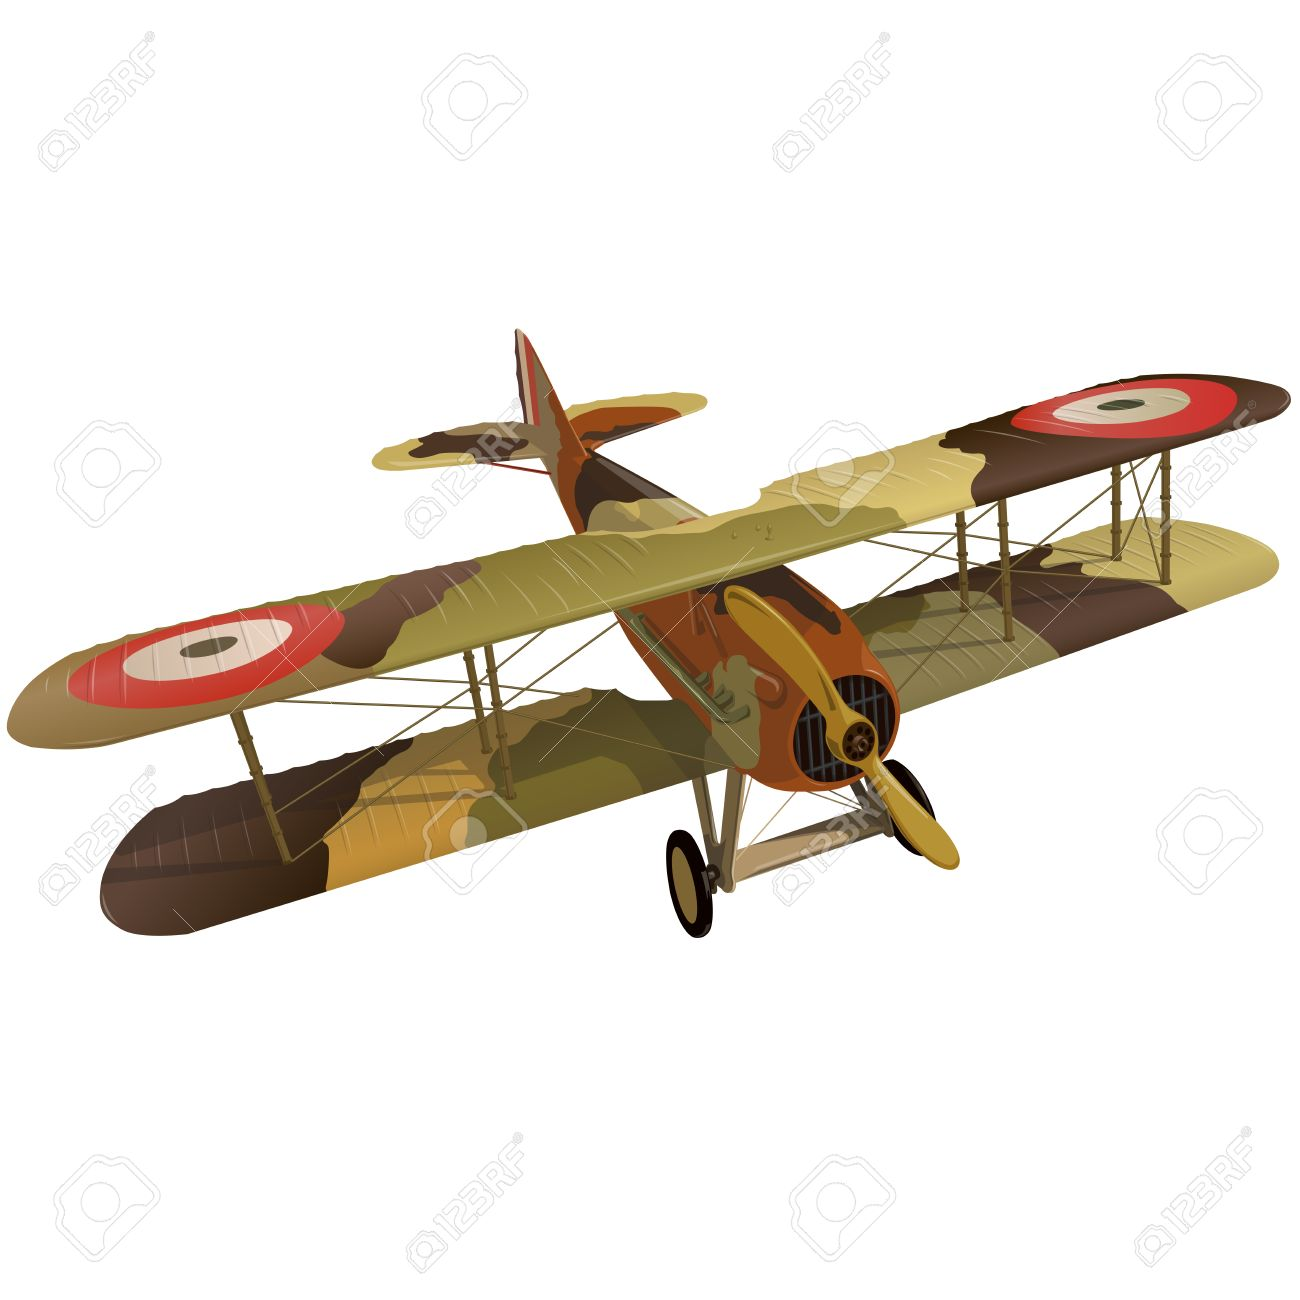 Biplane from World War with military camouflage  Model aircraft